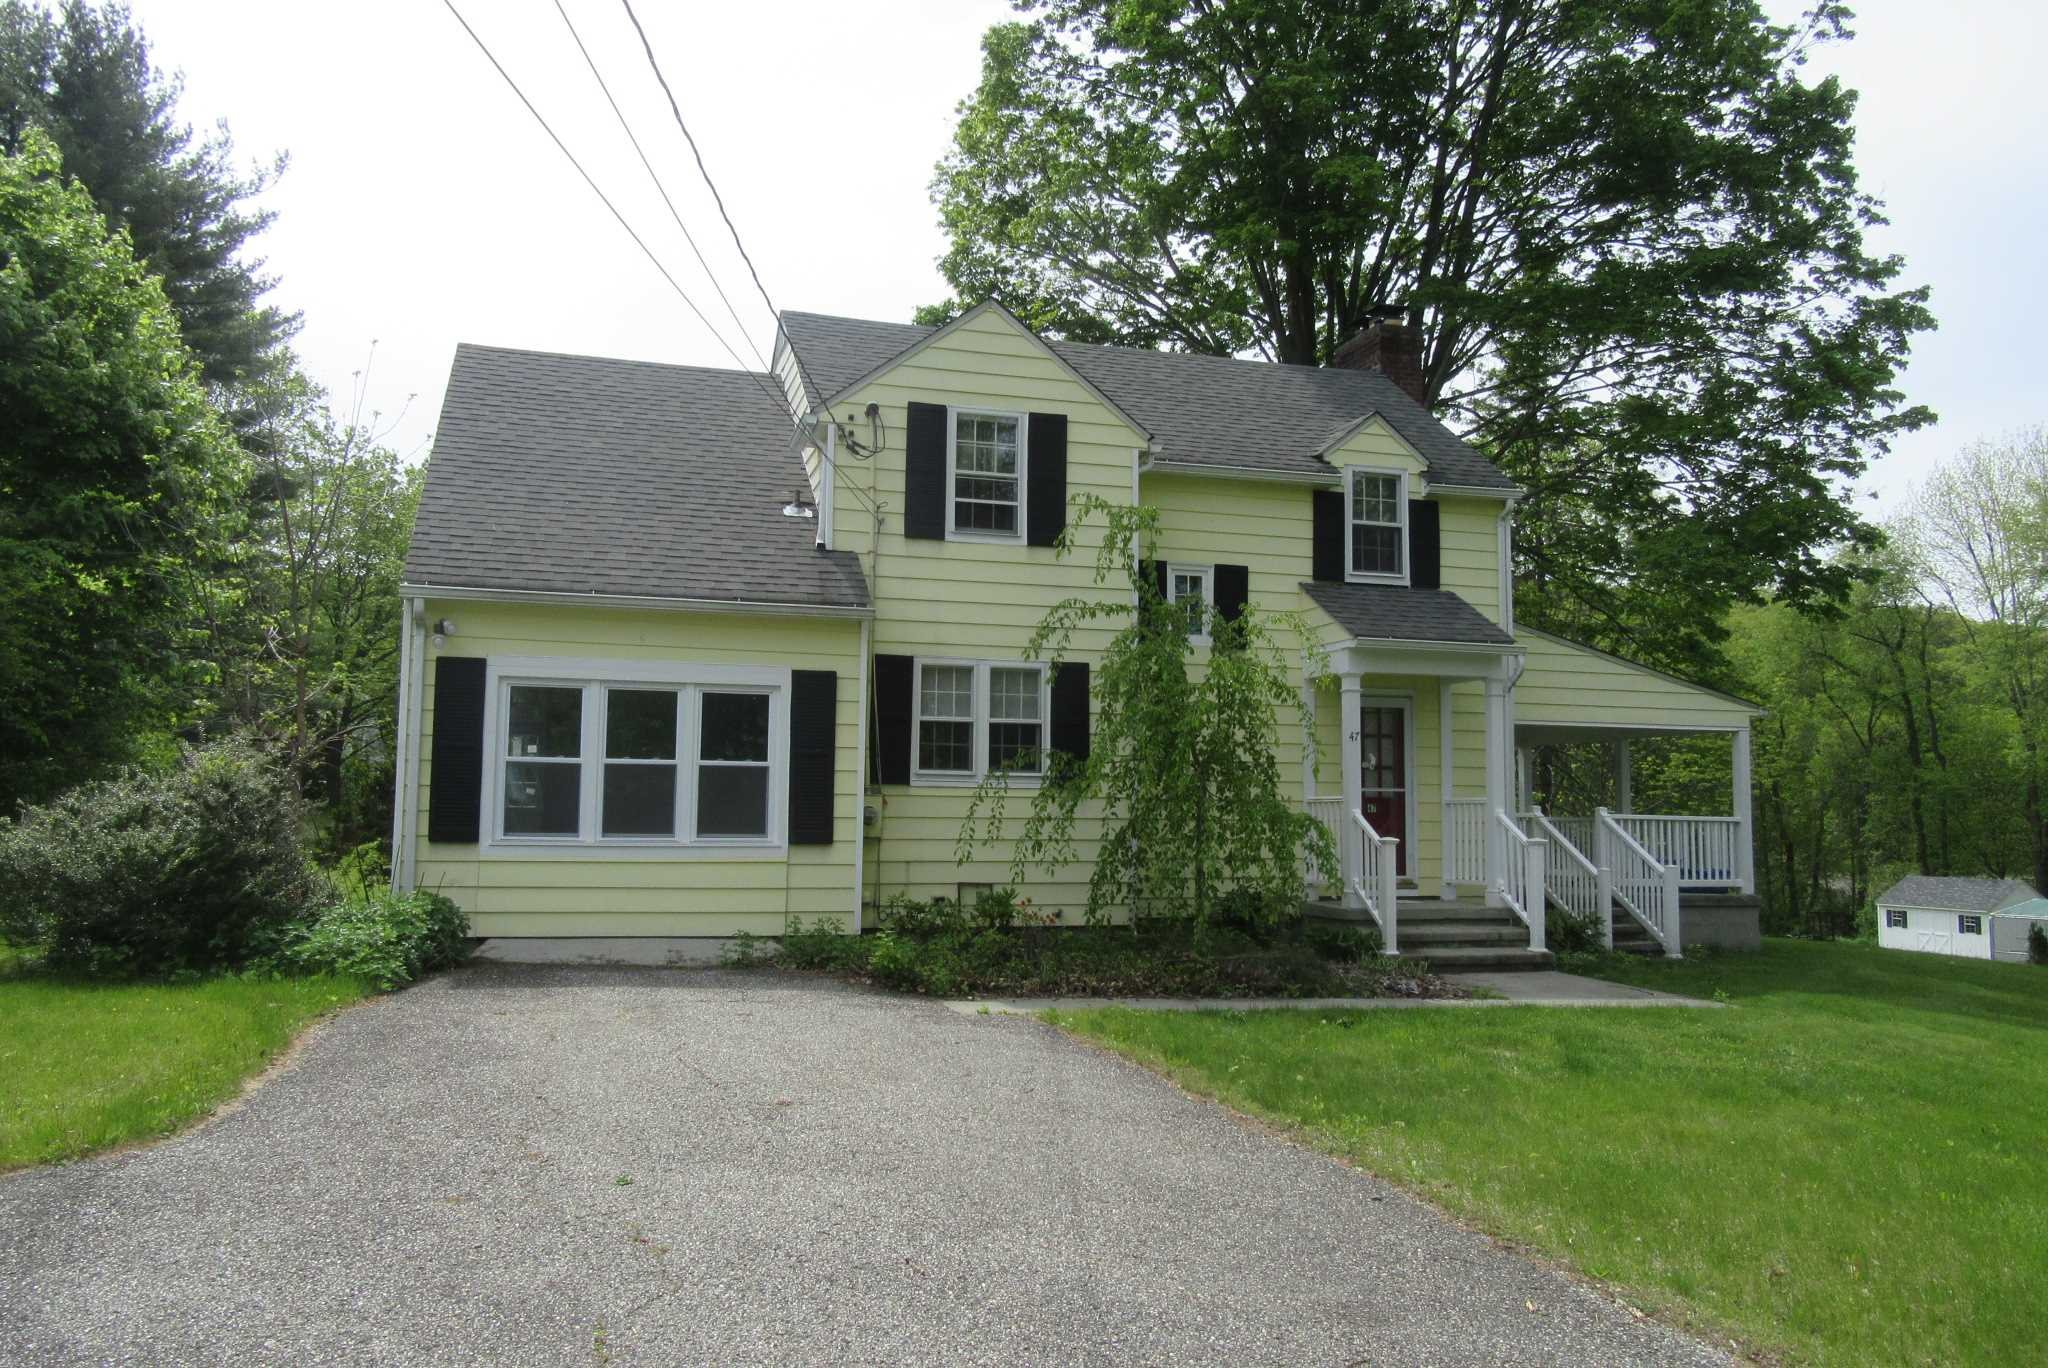 Single Family Home for Sale at 47 REIMER Avenue 47 REIMER Avenue Dover Plains, New York 12522 United States